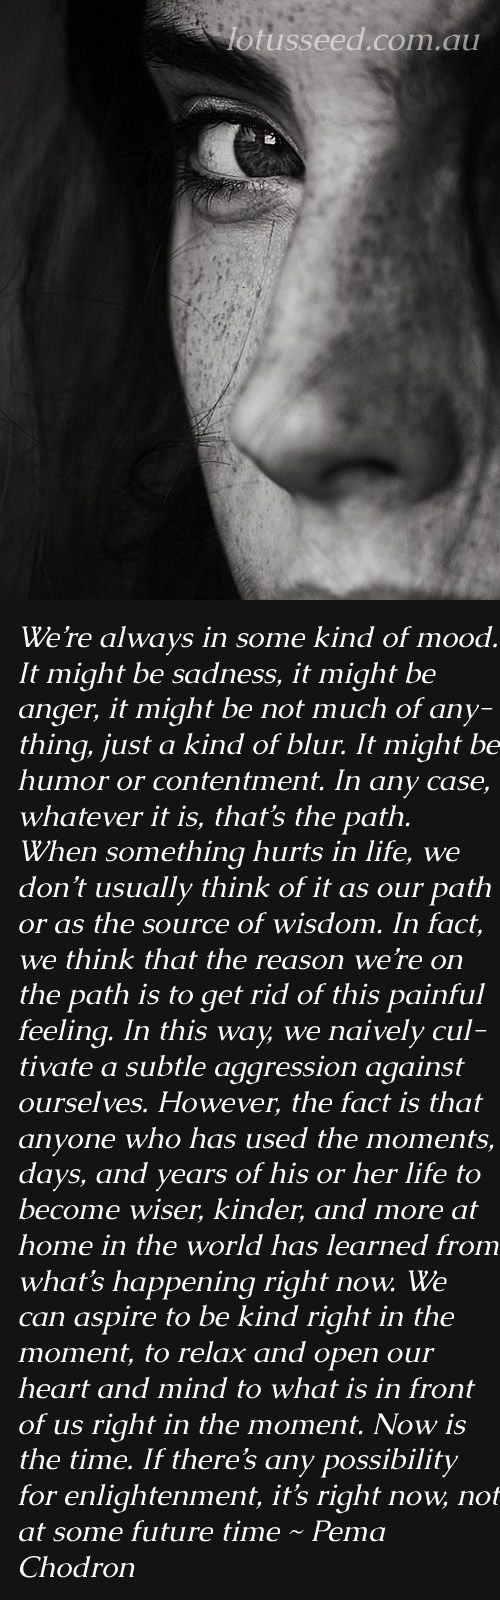 Pema Chodron Buddhism Zen quotes by lotusseed.com.au